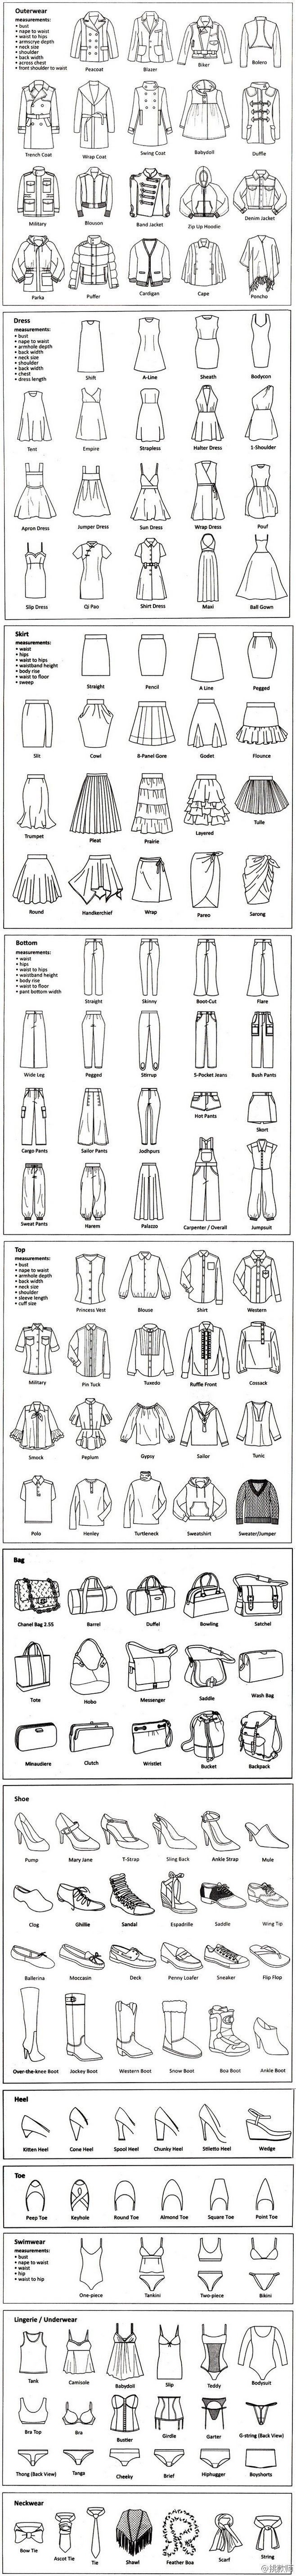 cool Garment Fashion Terminology | Fashion Design Sewing, Resources, Techniques, and ... by http://www.redfashiontrends.us/fashion-sketches/garment-fashion-terminology-fashion-design-sewing-resources-techniques-and/